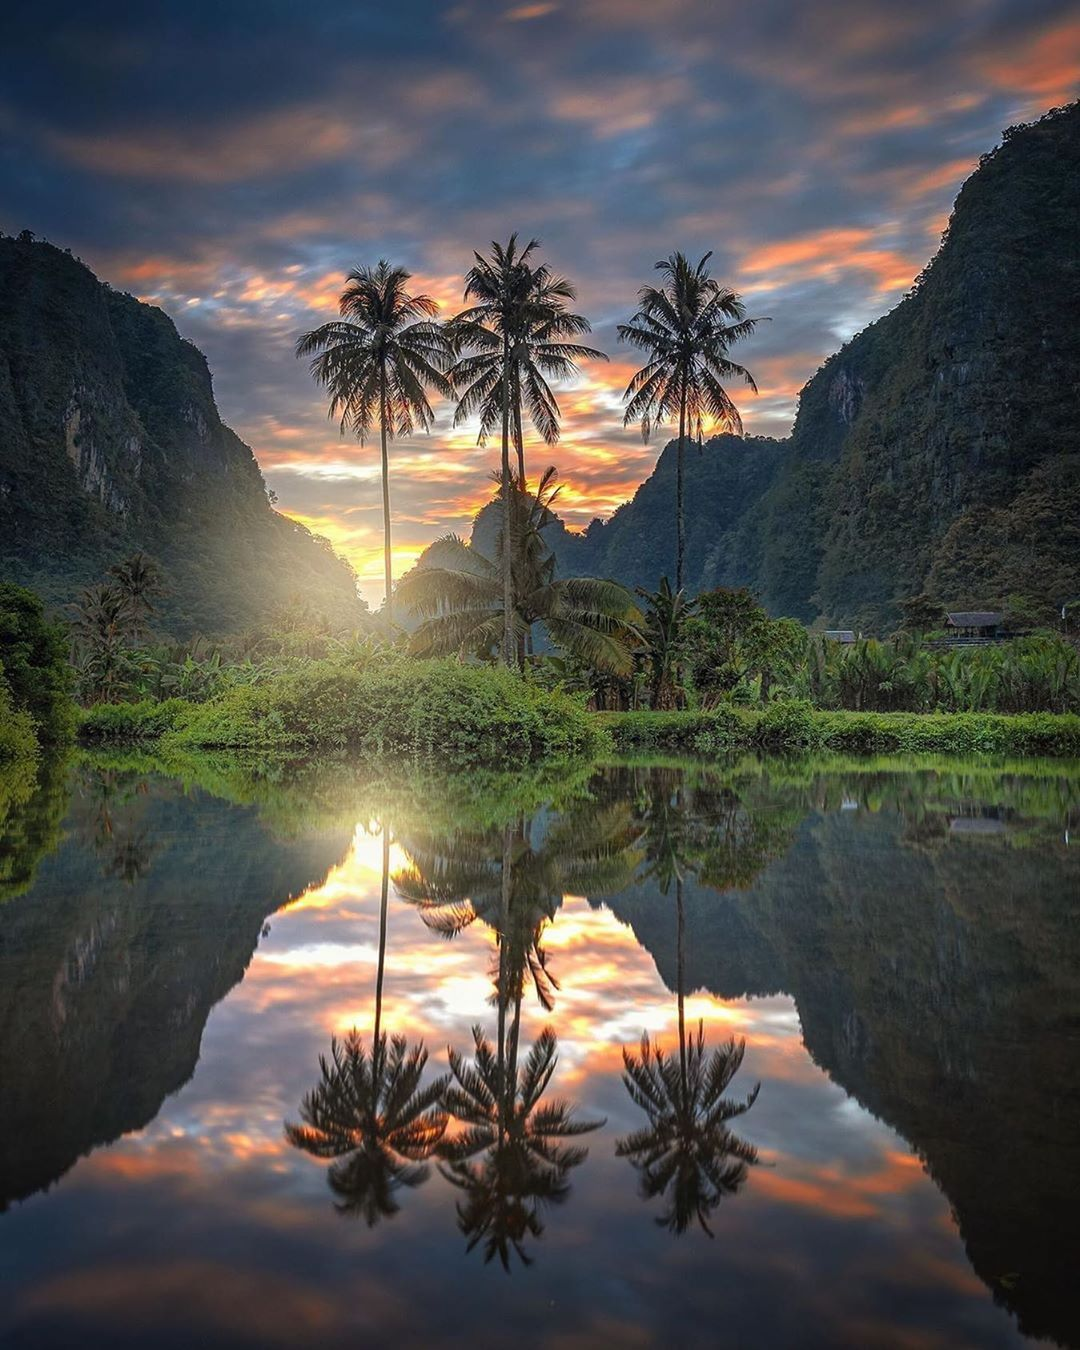 Pin By Misha Alexis On Reflejo Reflection In 2020 Nature Photography Nature Pictures Nature Photos